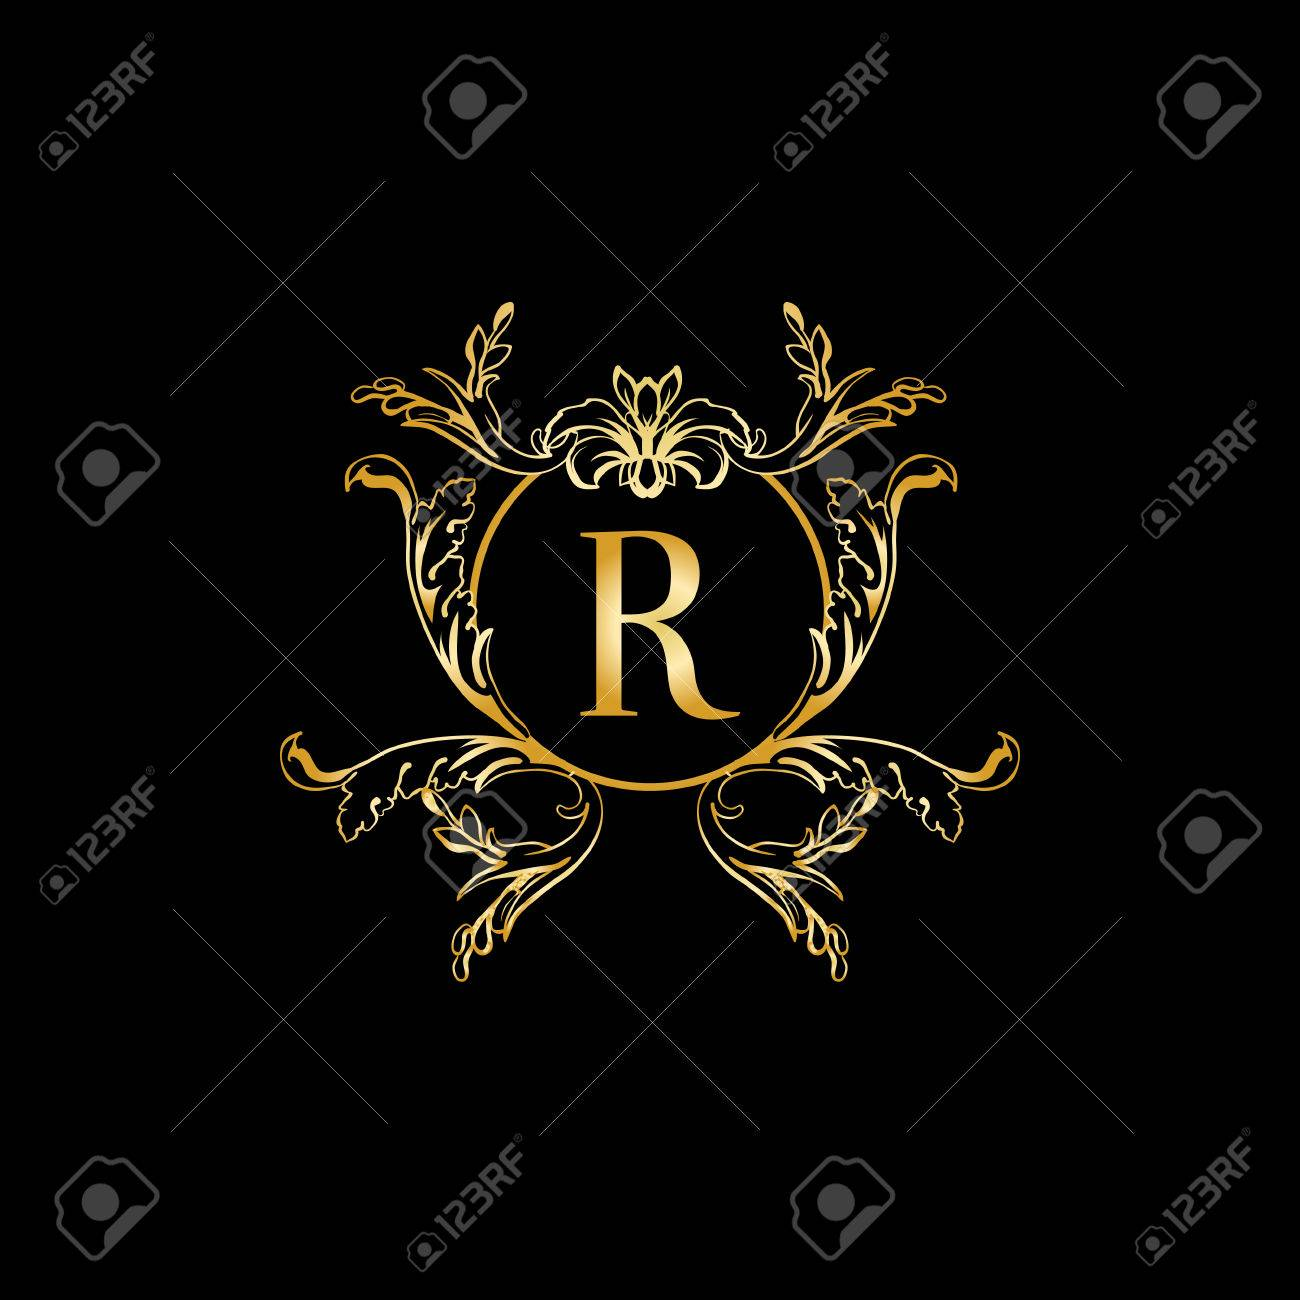 R stylish letter images video